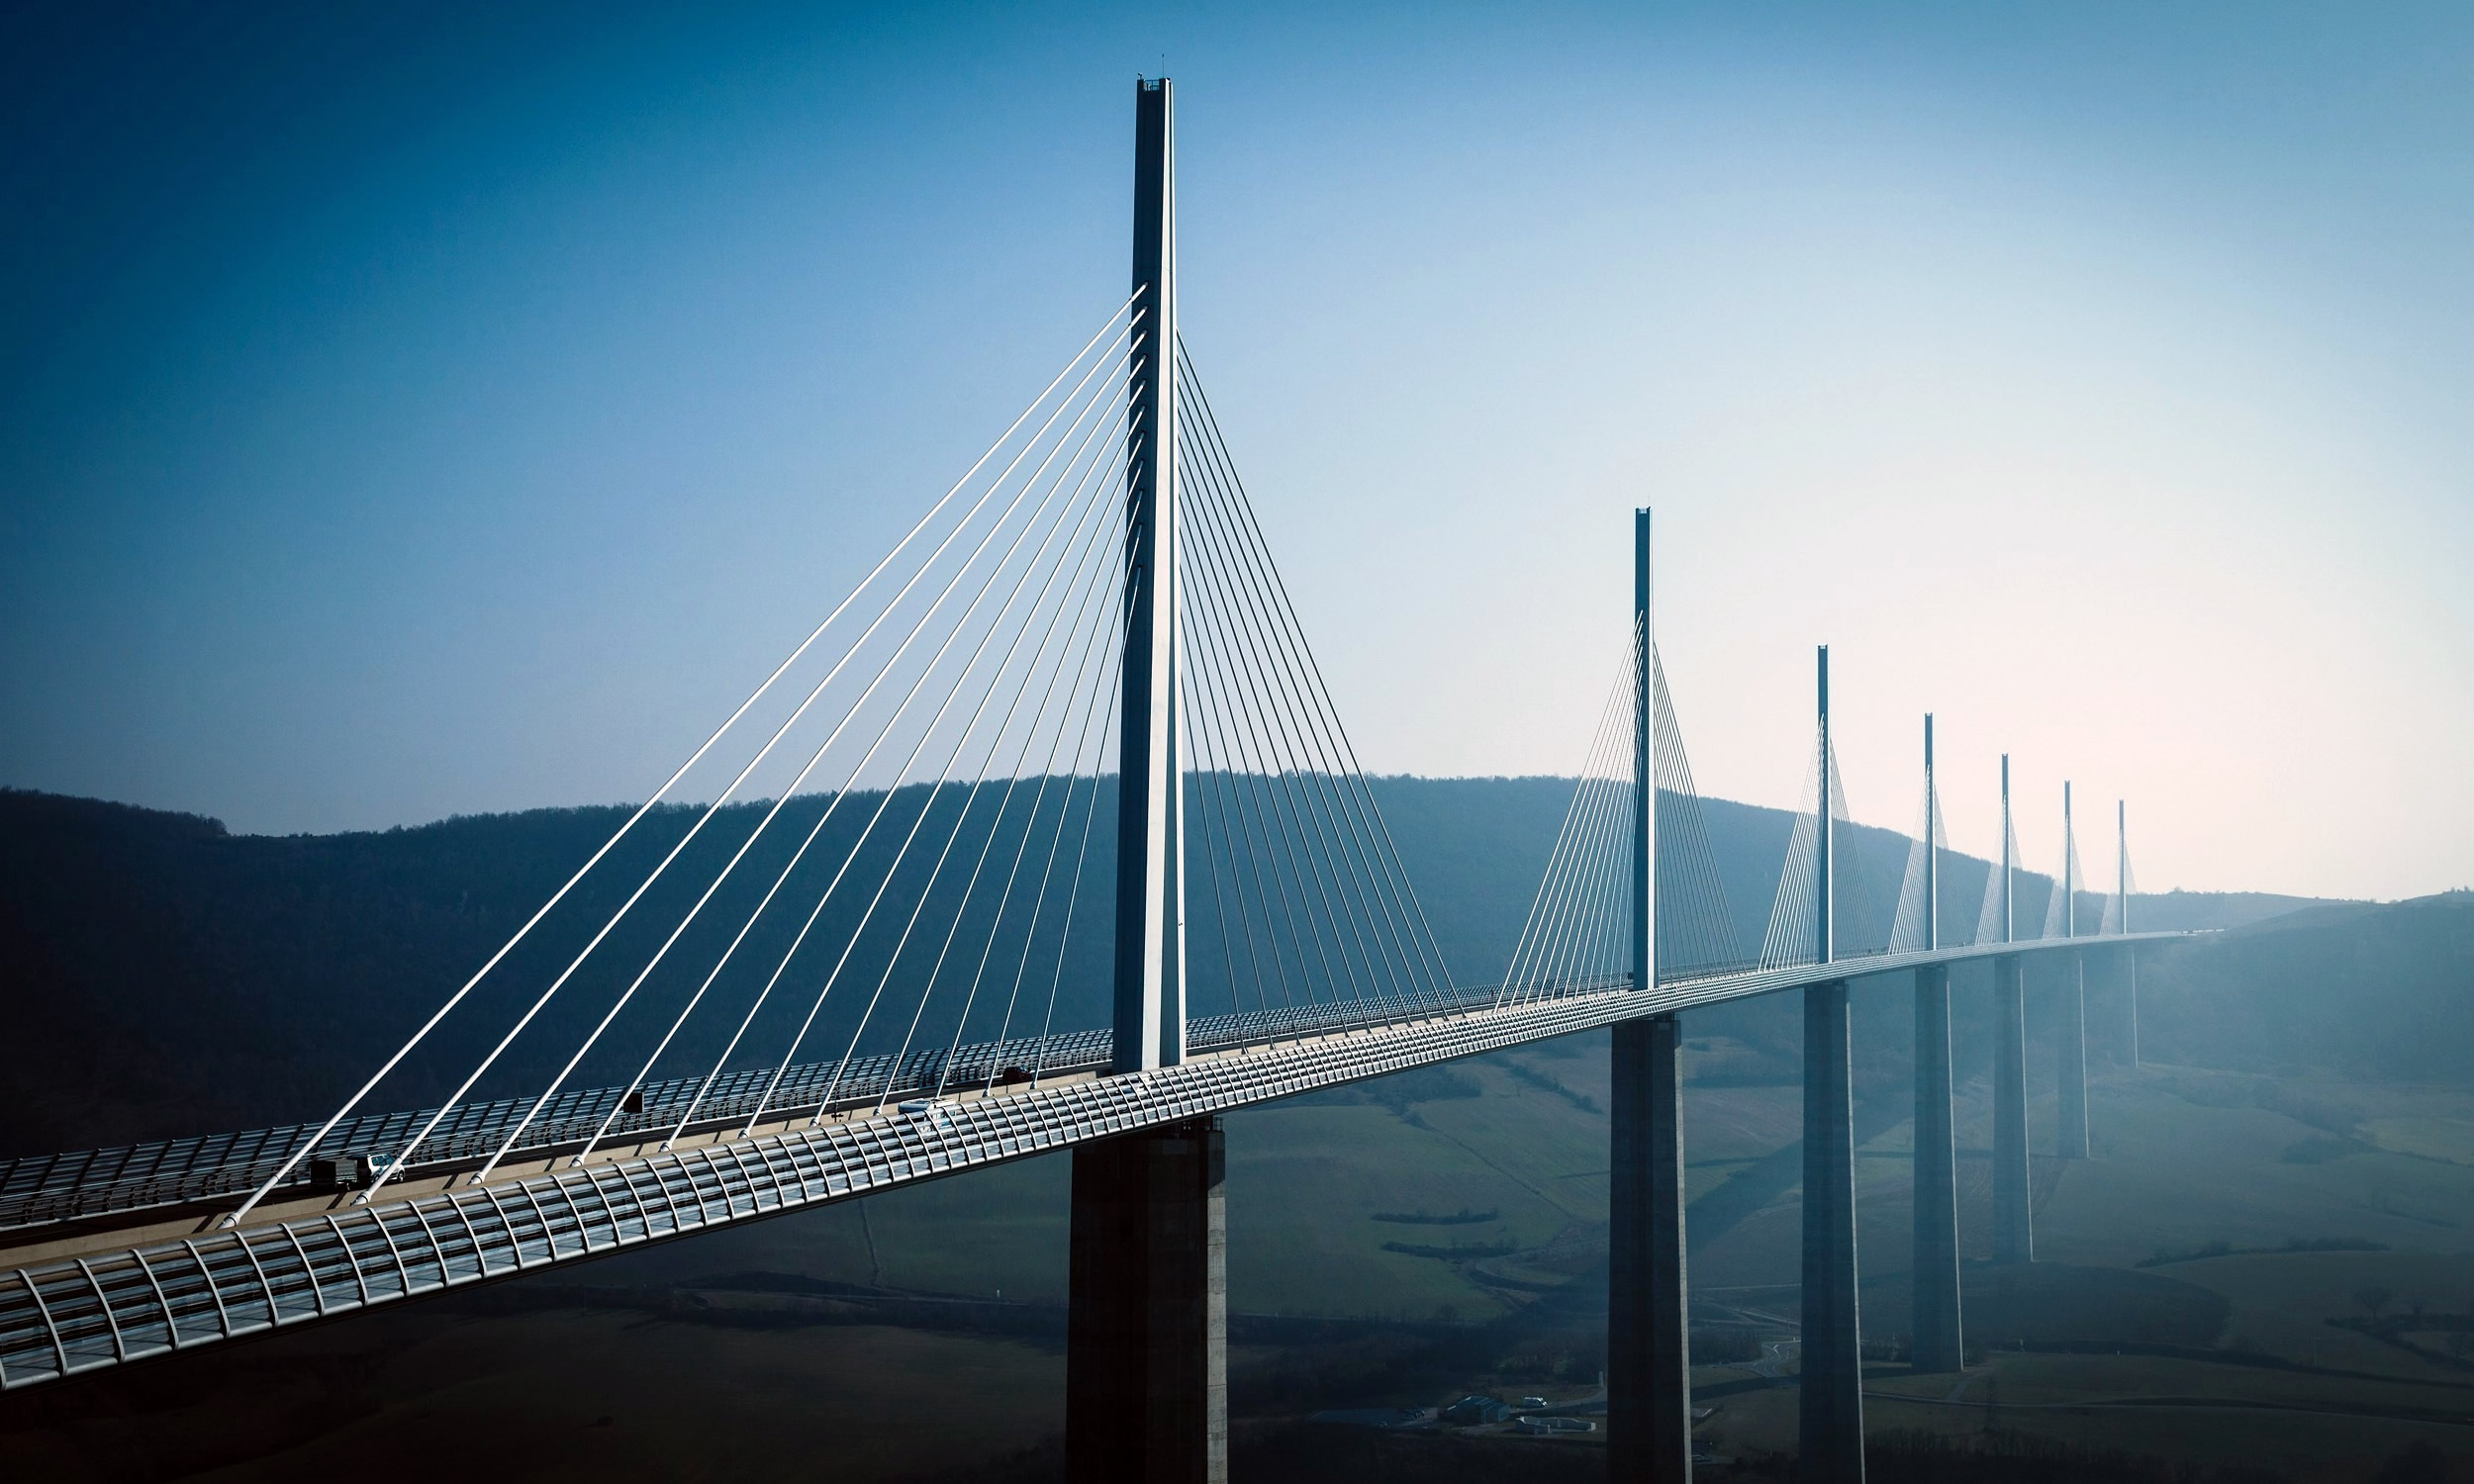 millau-viaduct-france-large-bridge-hd-wallpaper